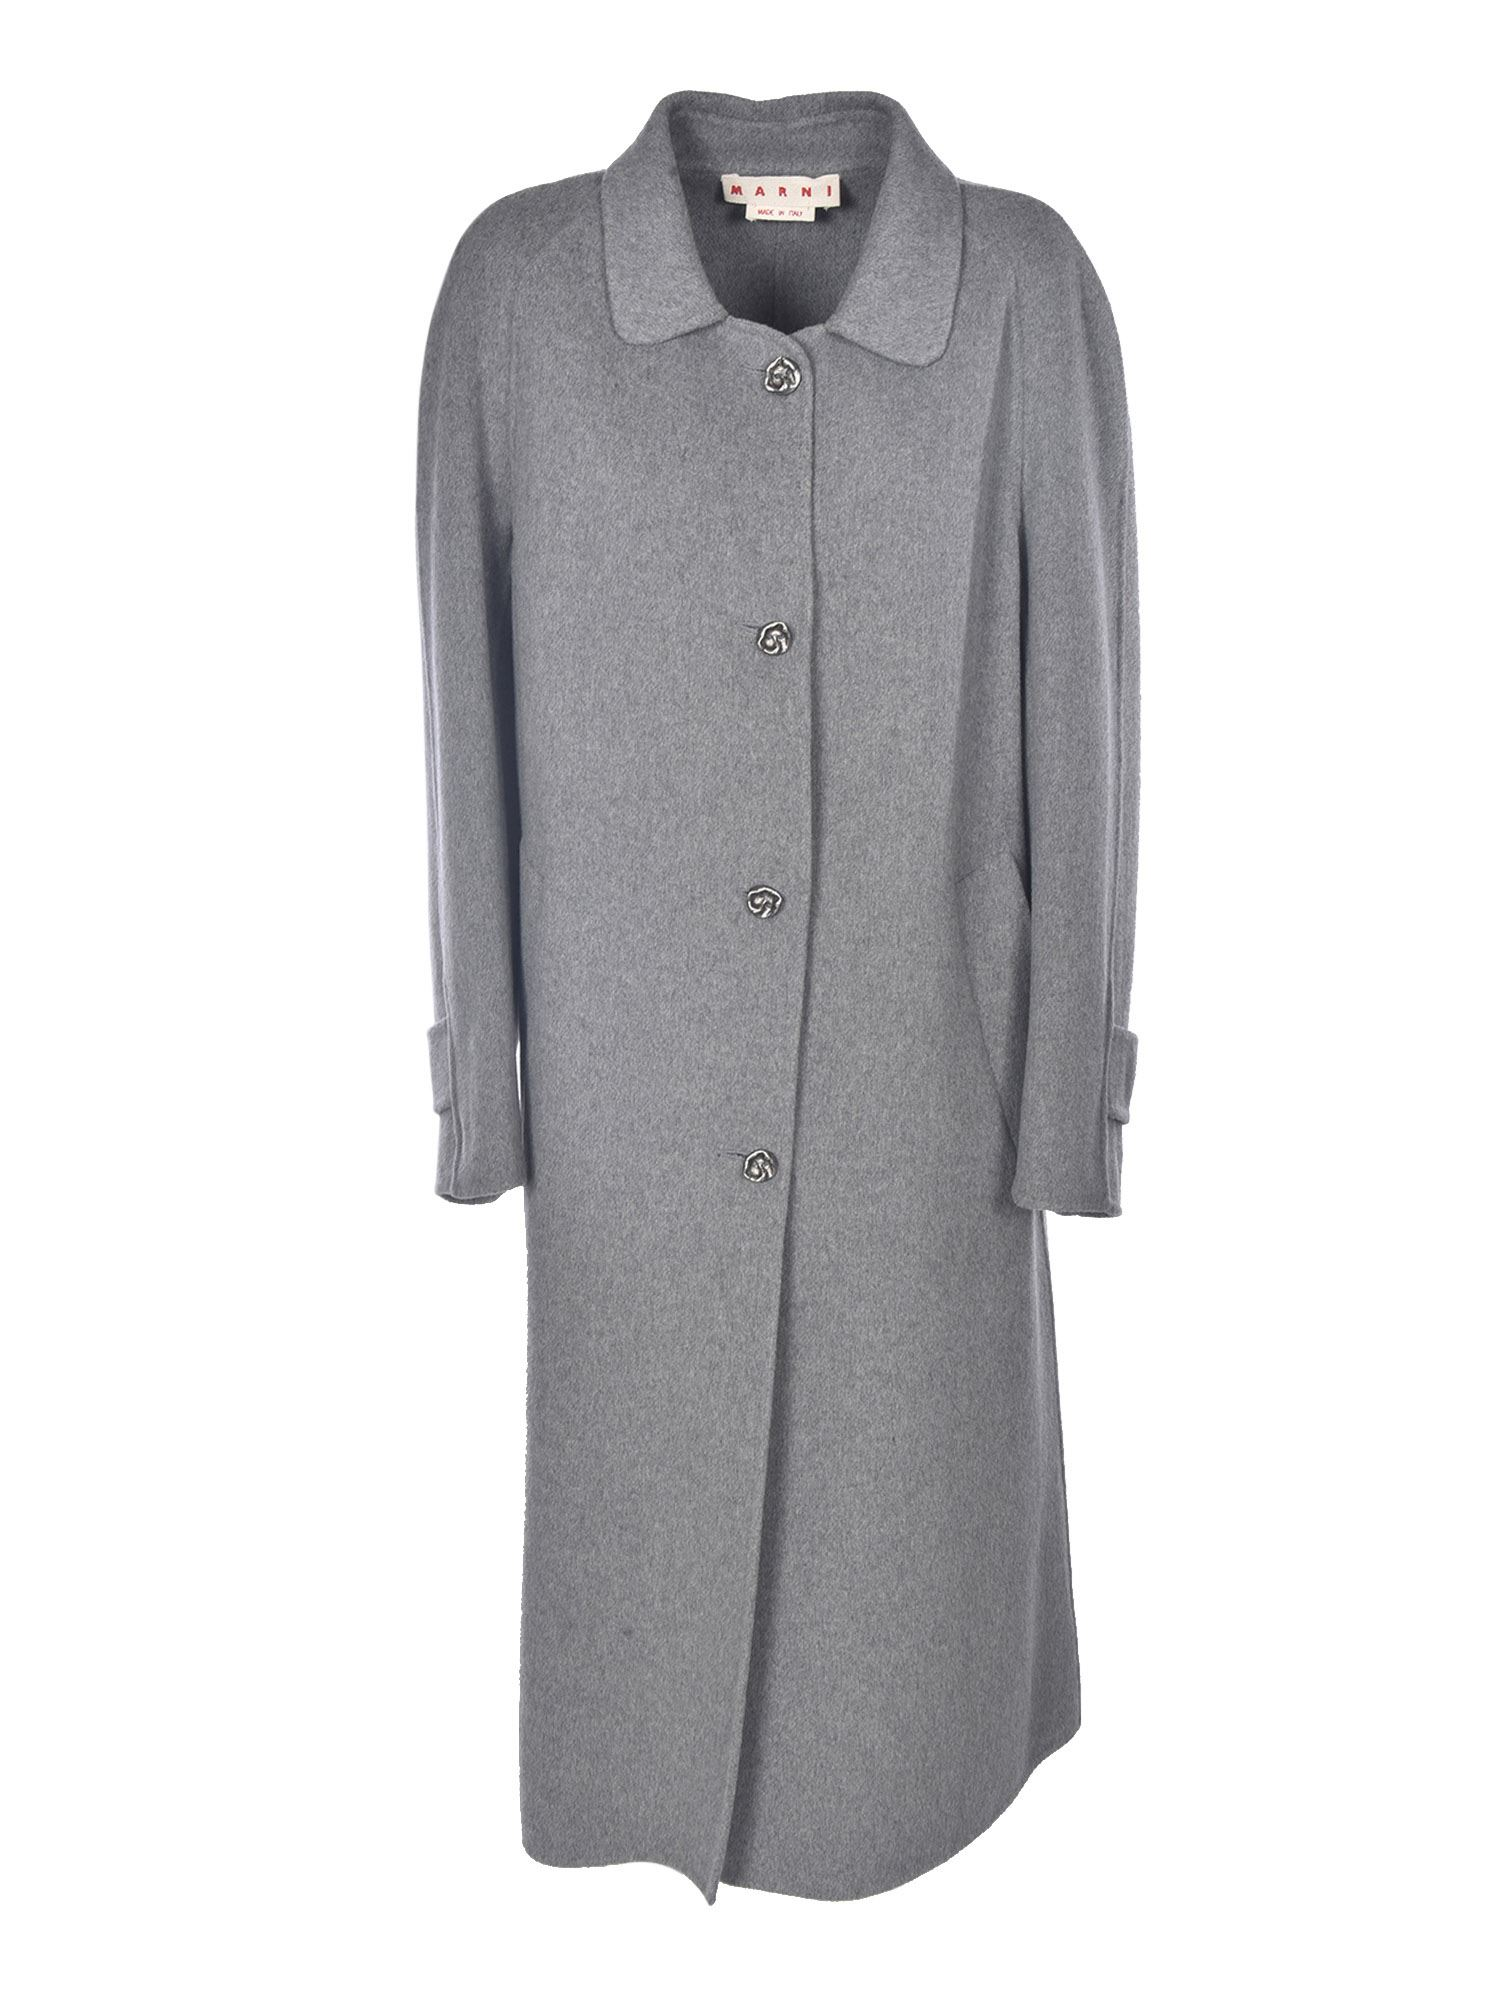 Marni LONG COAT IN GREY